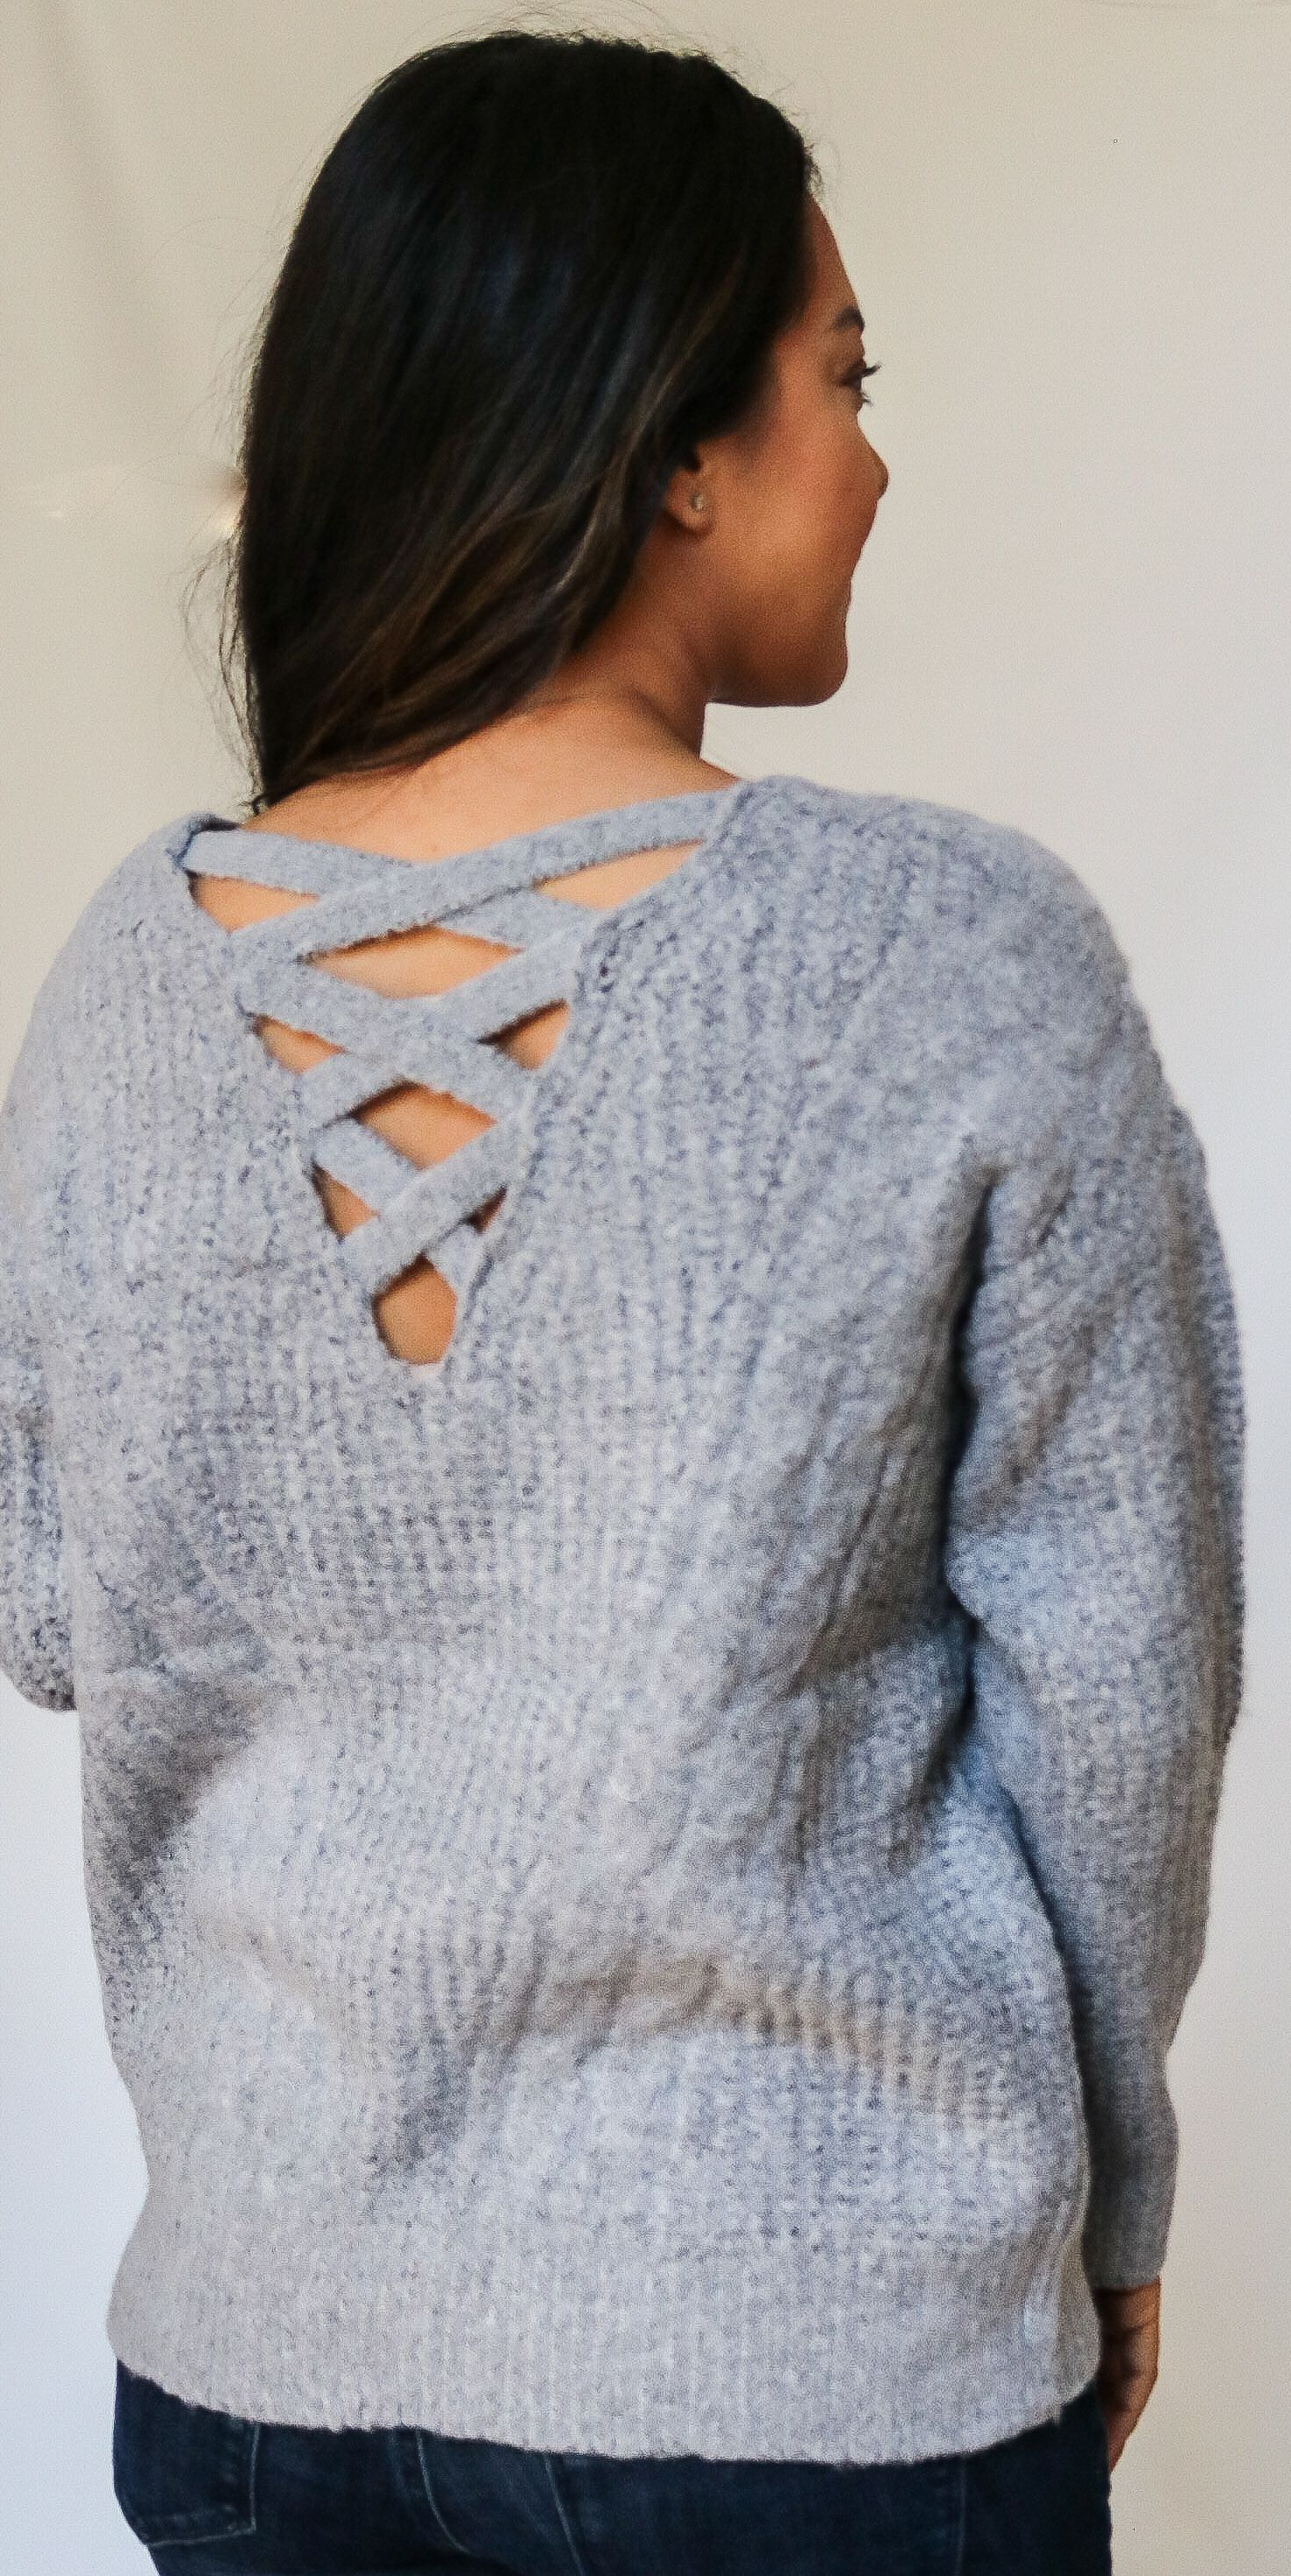 610db709f3b6ae THE EVELYN SWEATER: Grey brushed knit pullover sweater features cable  stitch and criss cross back detail.